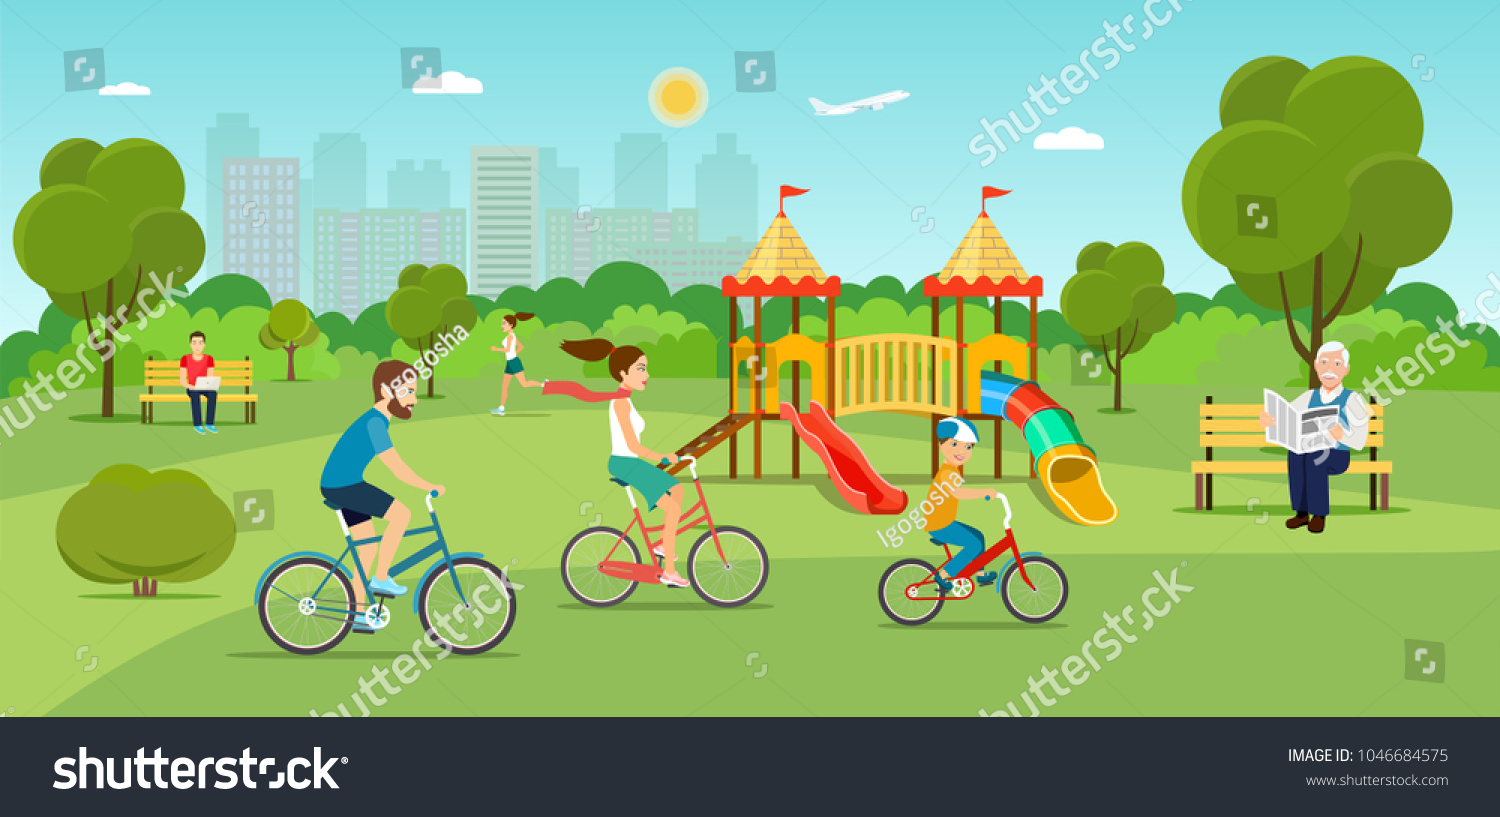 Family riding a bicycle Grandfather sitting on the bench and reading newspaper Young man sitting on the bench and working with laptop and Running girl in the park. Playground. Vector flat illustration #1046684575